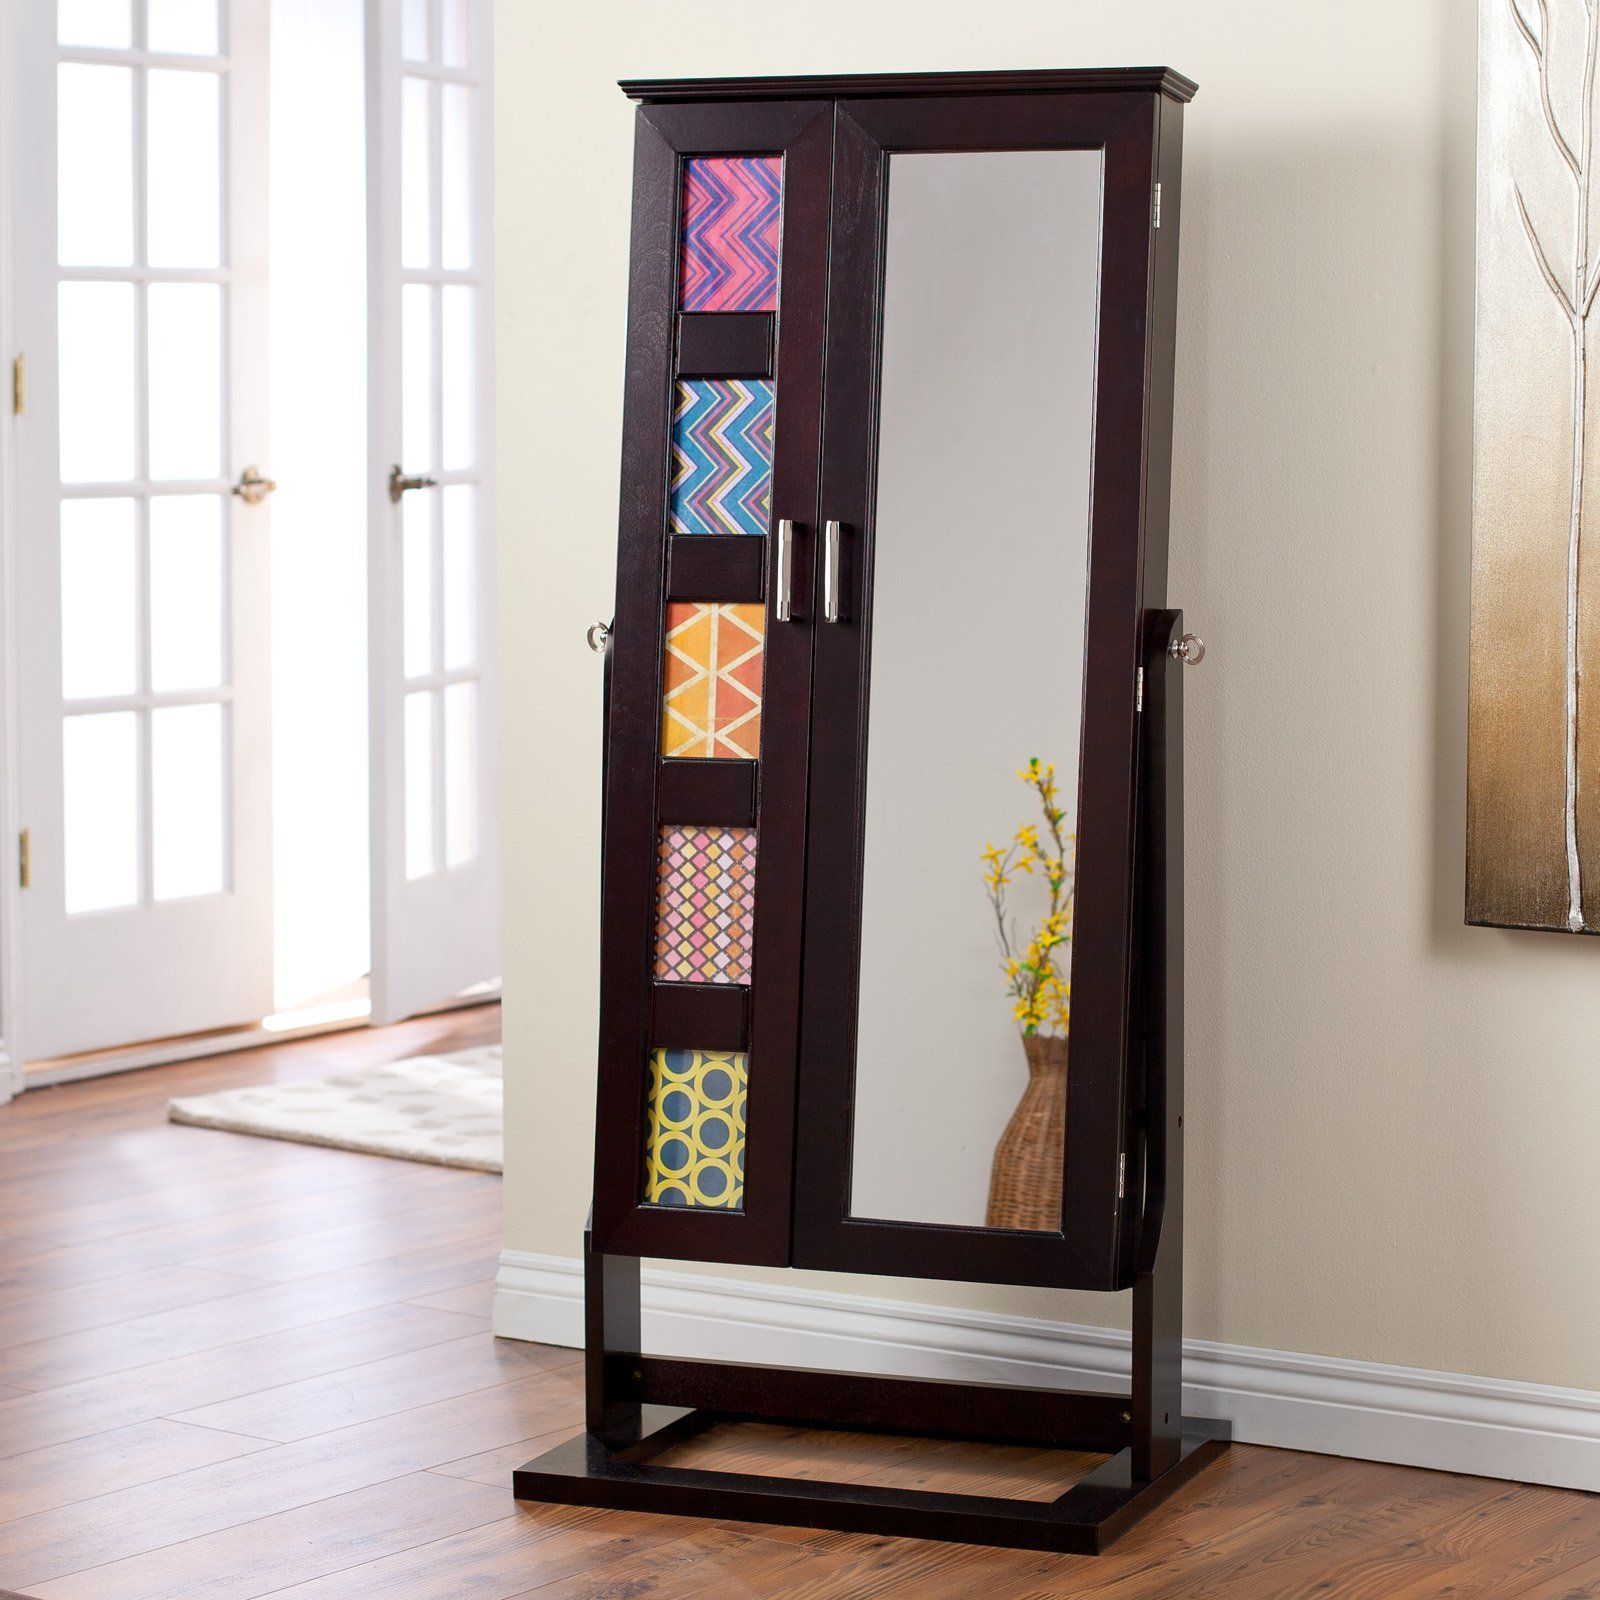 Superb Belham Living Photo Frames Jewelry Armoire Cheval Mirror   Espresso | From  Hayneedle.com